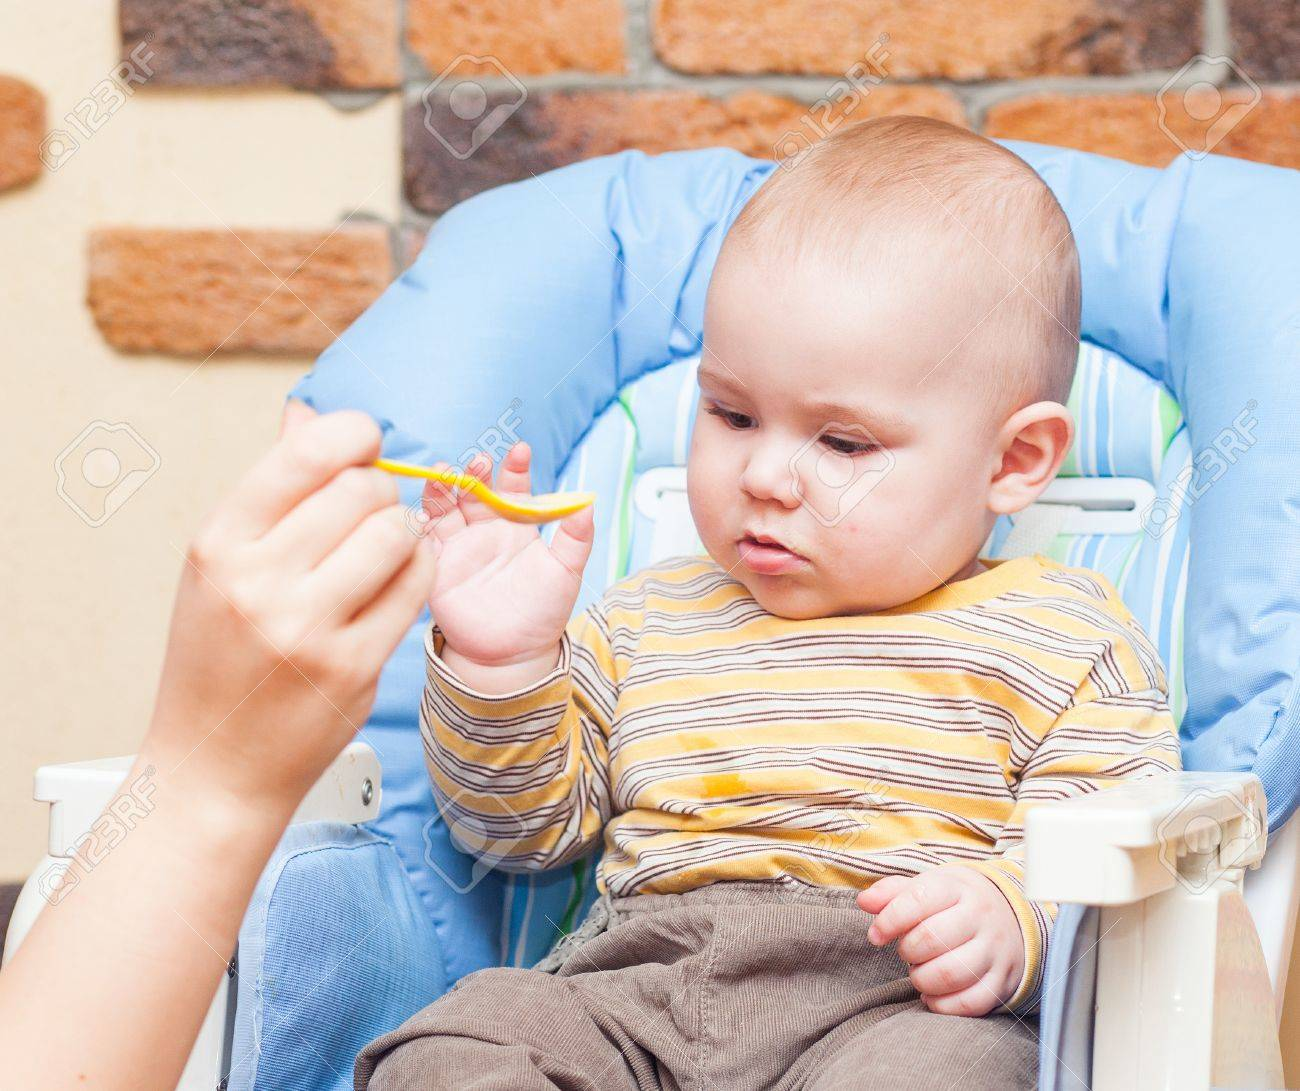 Eating little boy is looking very angry and annoyed Stock Photo - 17181972